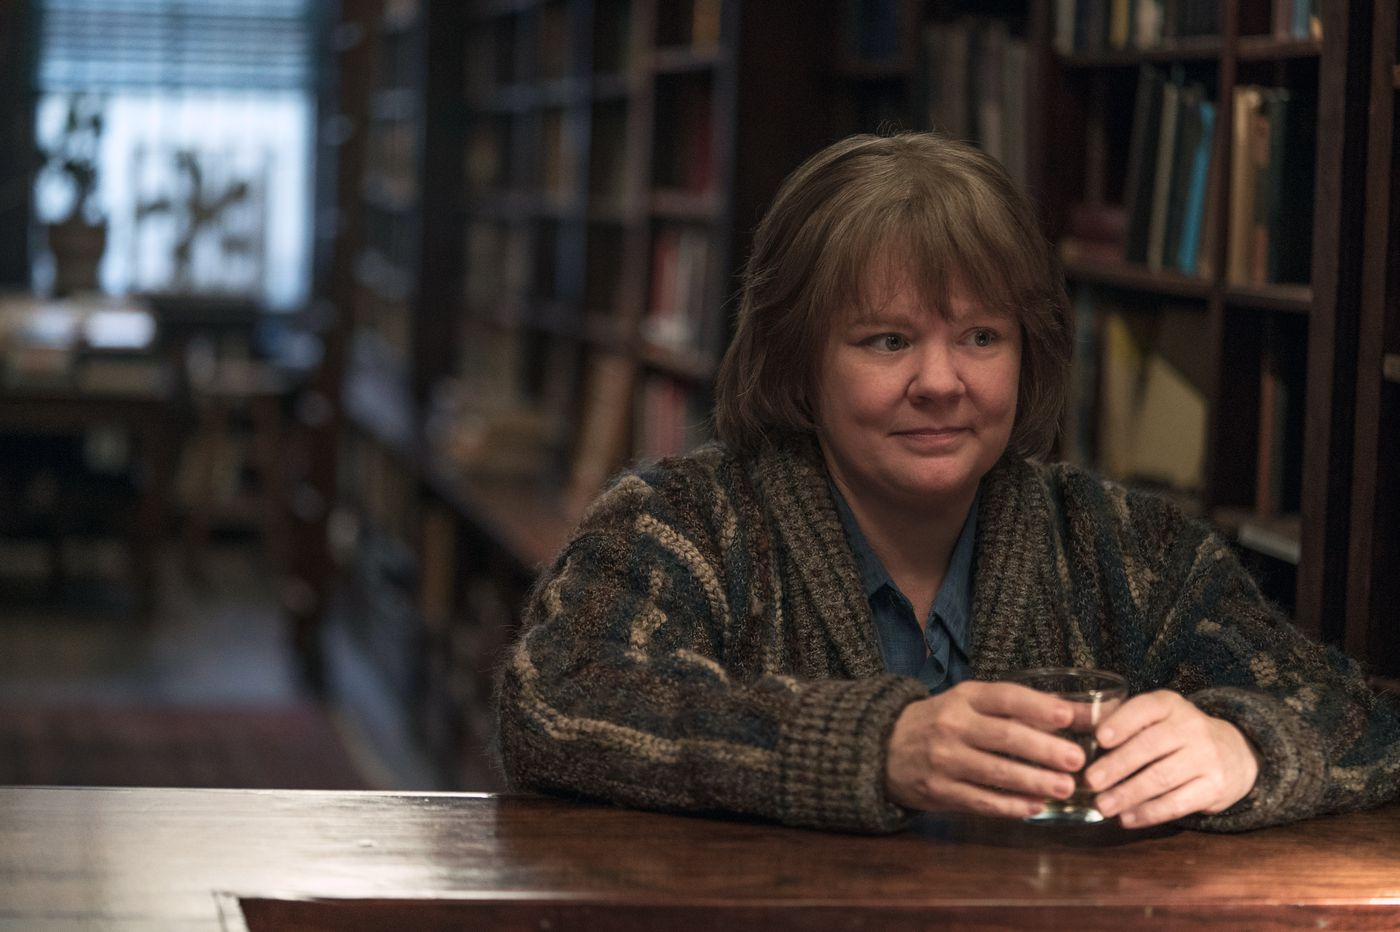 Forging a new career: Melissa McCarthy is a writer turned fraudster in 'Can You Ever Forgive Me?'